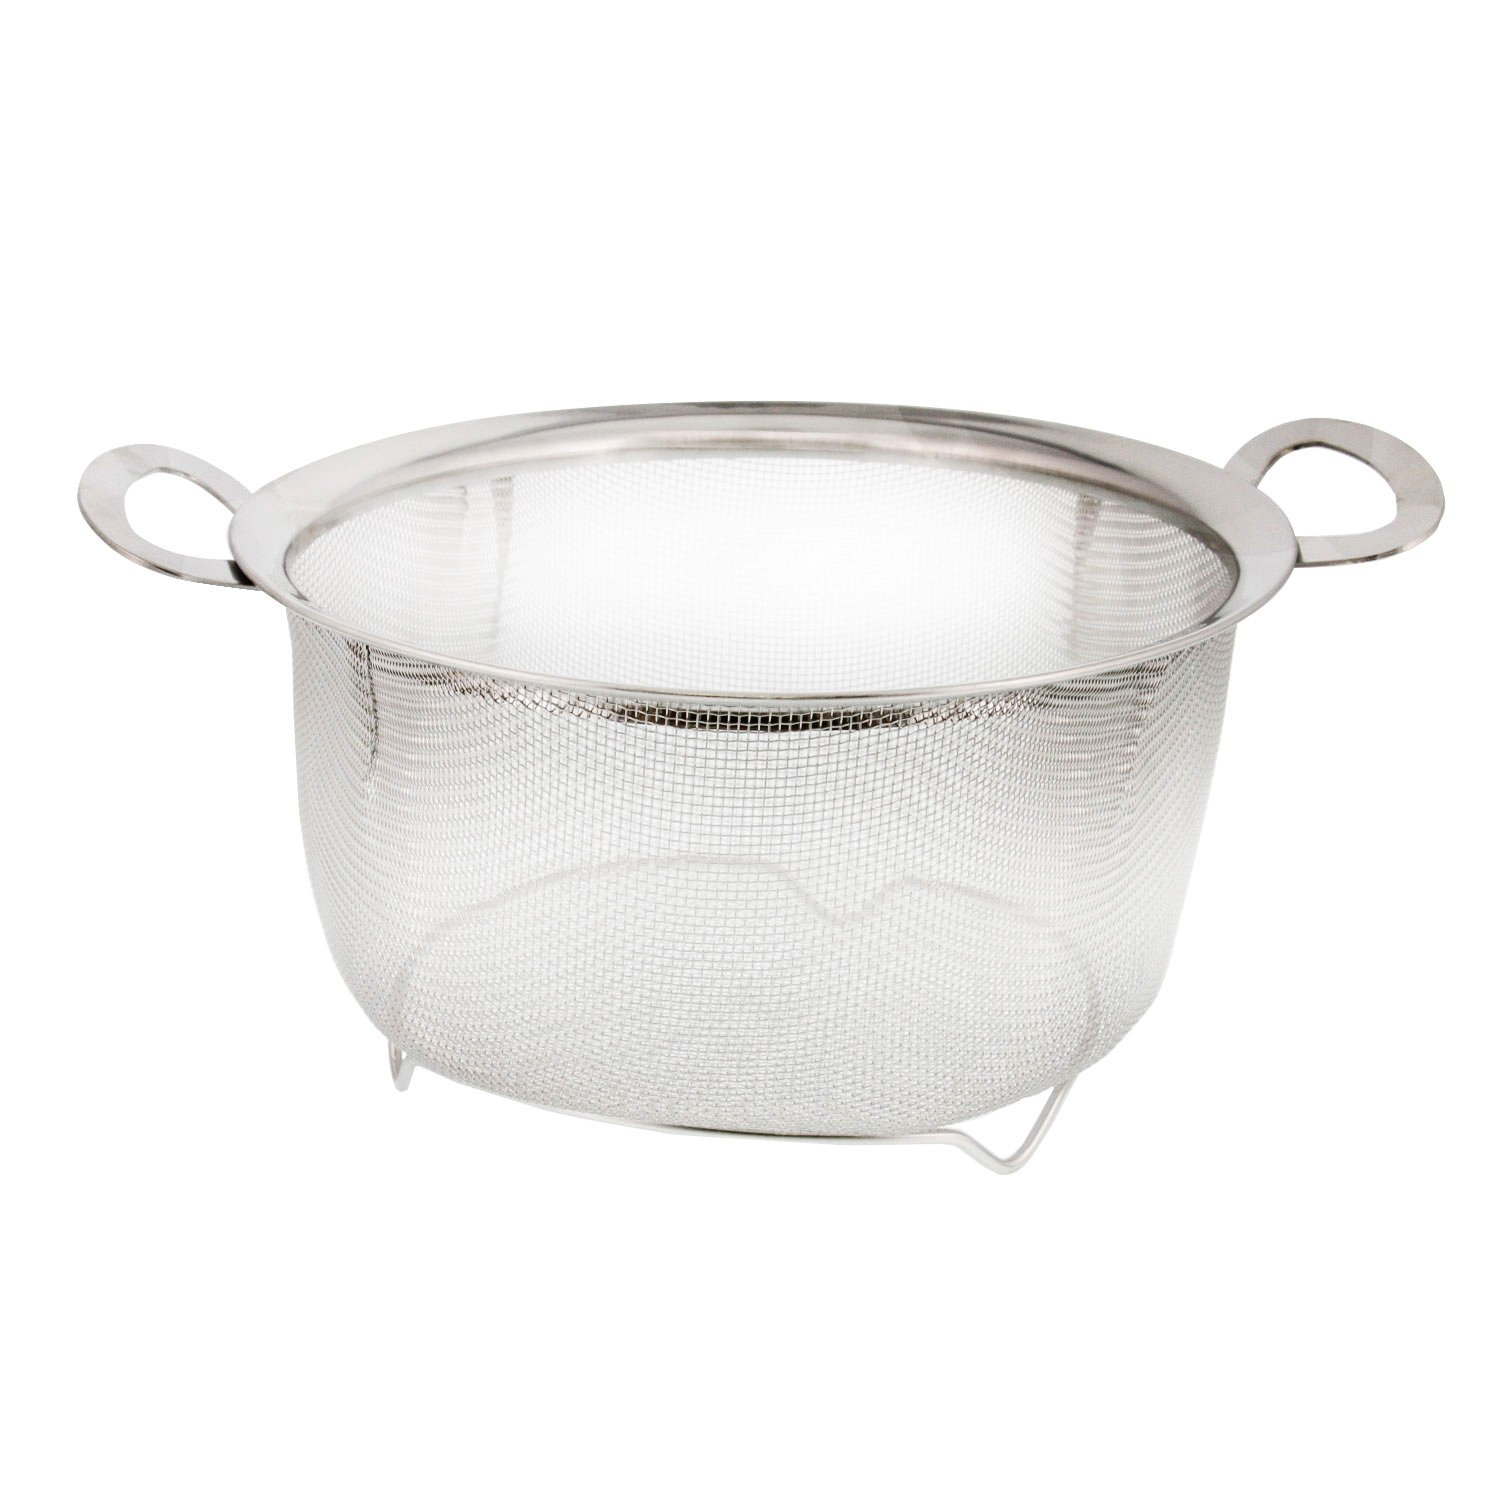 U.S. Kitchen Supply 3 Quart Stainless Steel Mesh Net Strainer Basket with a Wide Rim, Resting Feet and Handles - Colander to Strain, Rinse, Fry, Steam or Cook Vegetables & Pasta